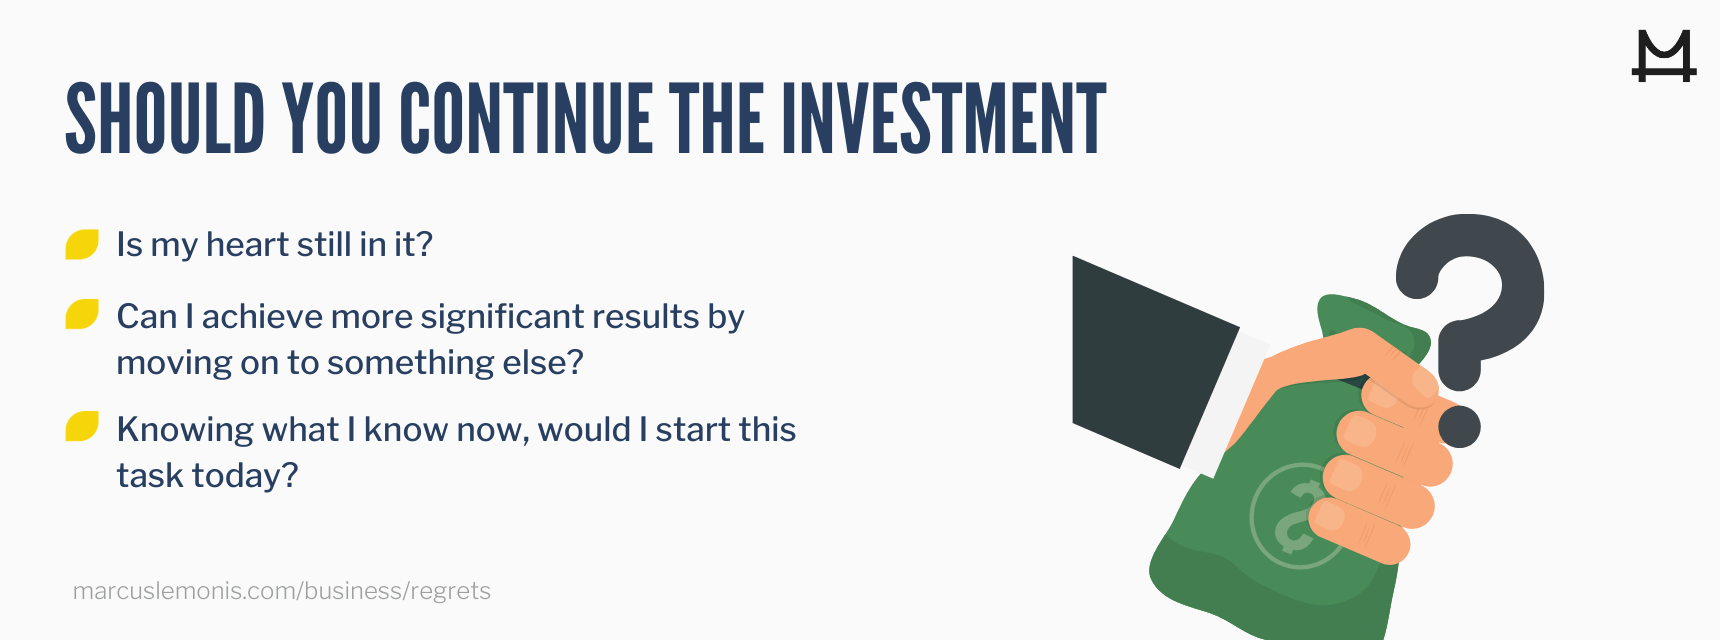 Three questions to ask yourself before continuing an investment